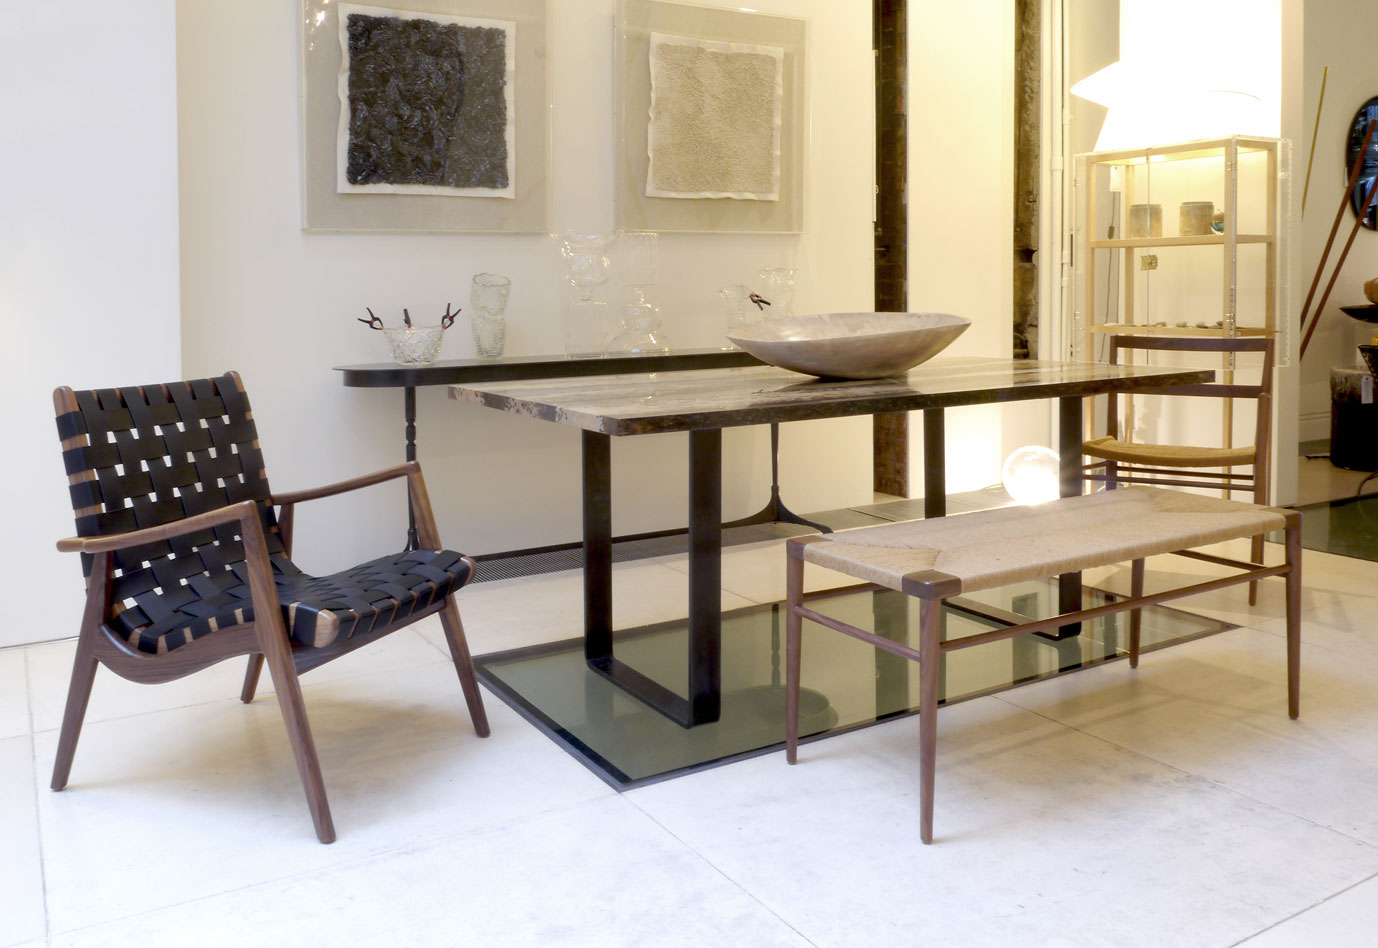 Woven Leather Lounge Chair, Woven Rush Bench and our Rush Dining Chair in the background